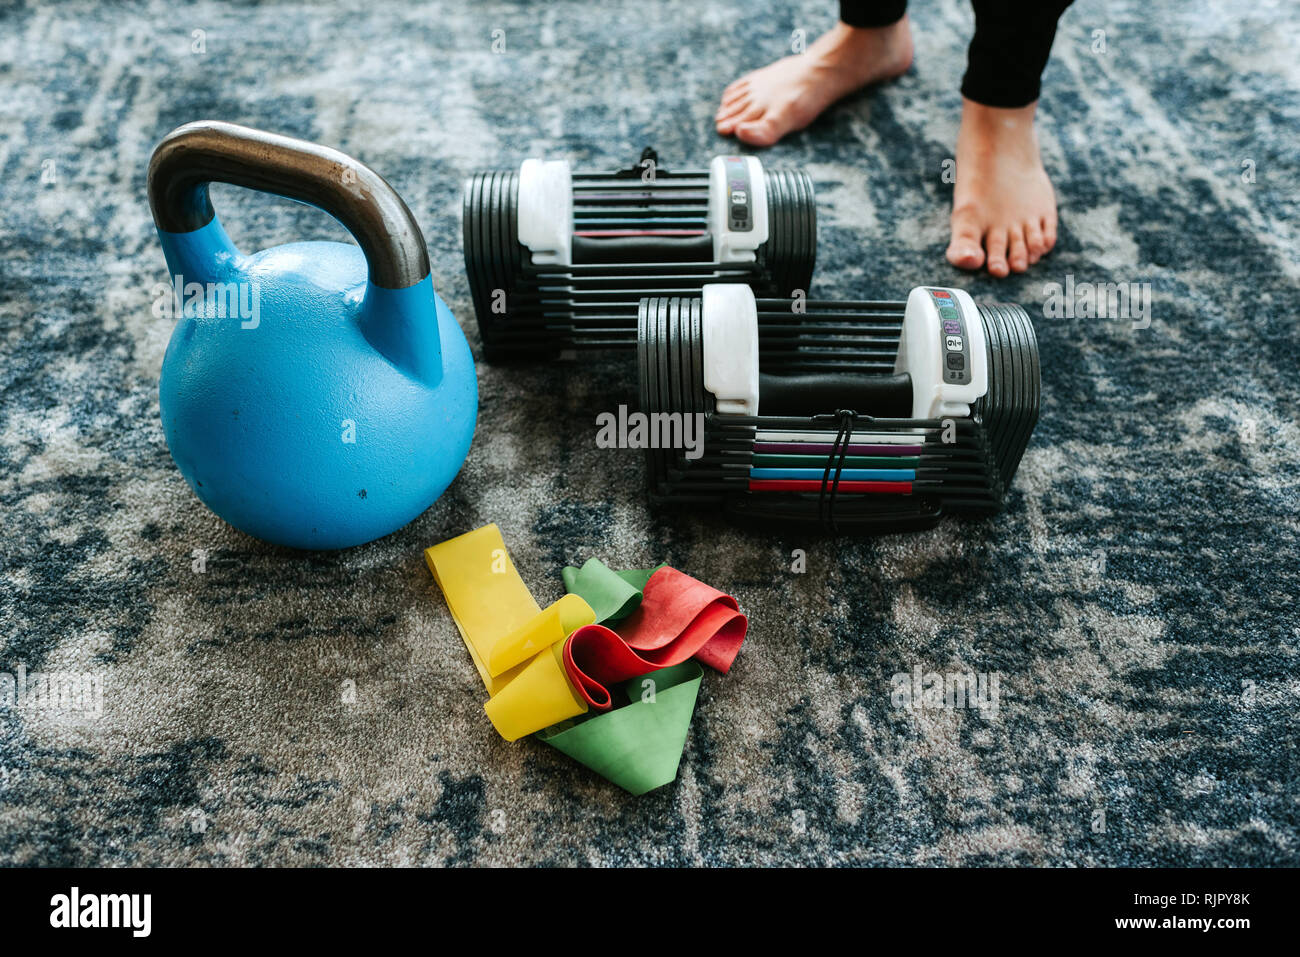 Kettle bell and assortment of exercise equipment by pair of feet - Stock Image